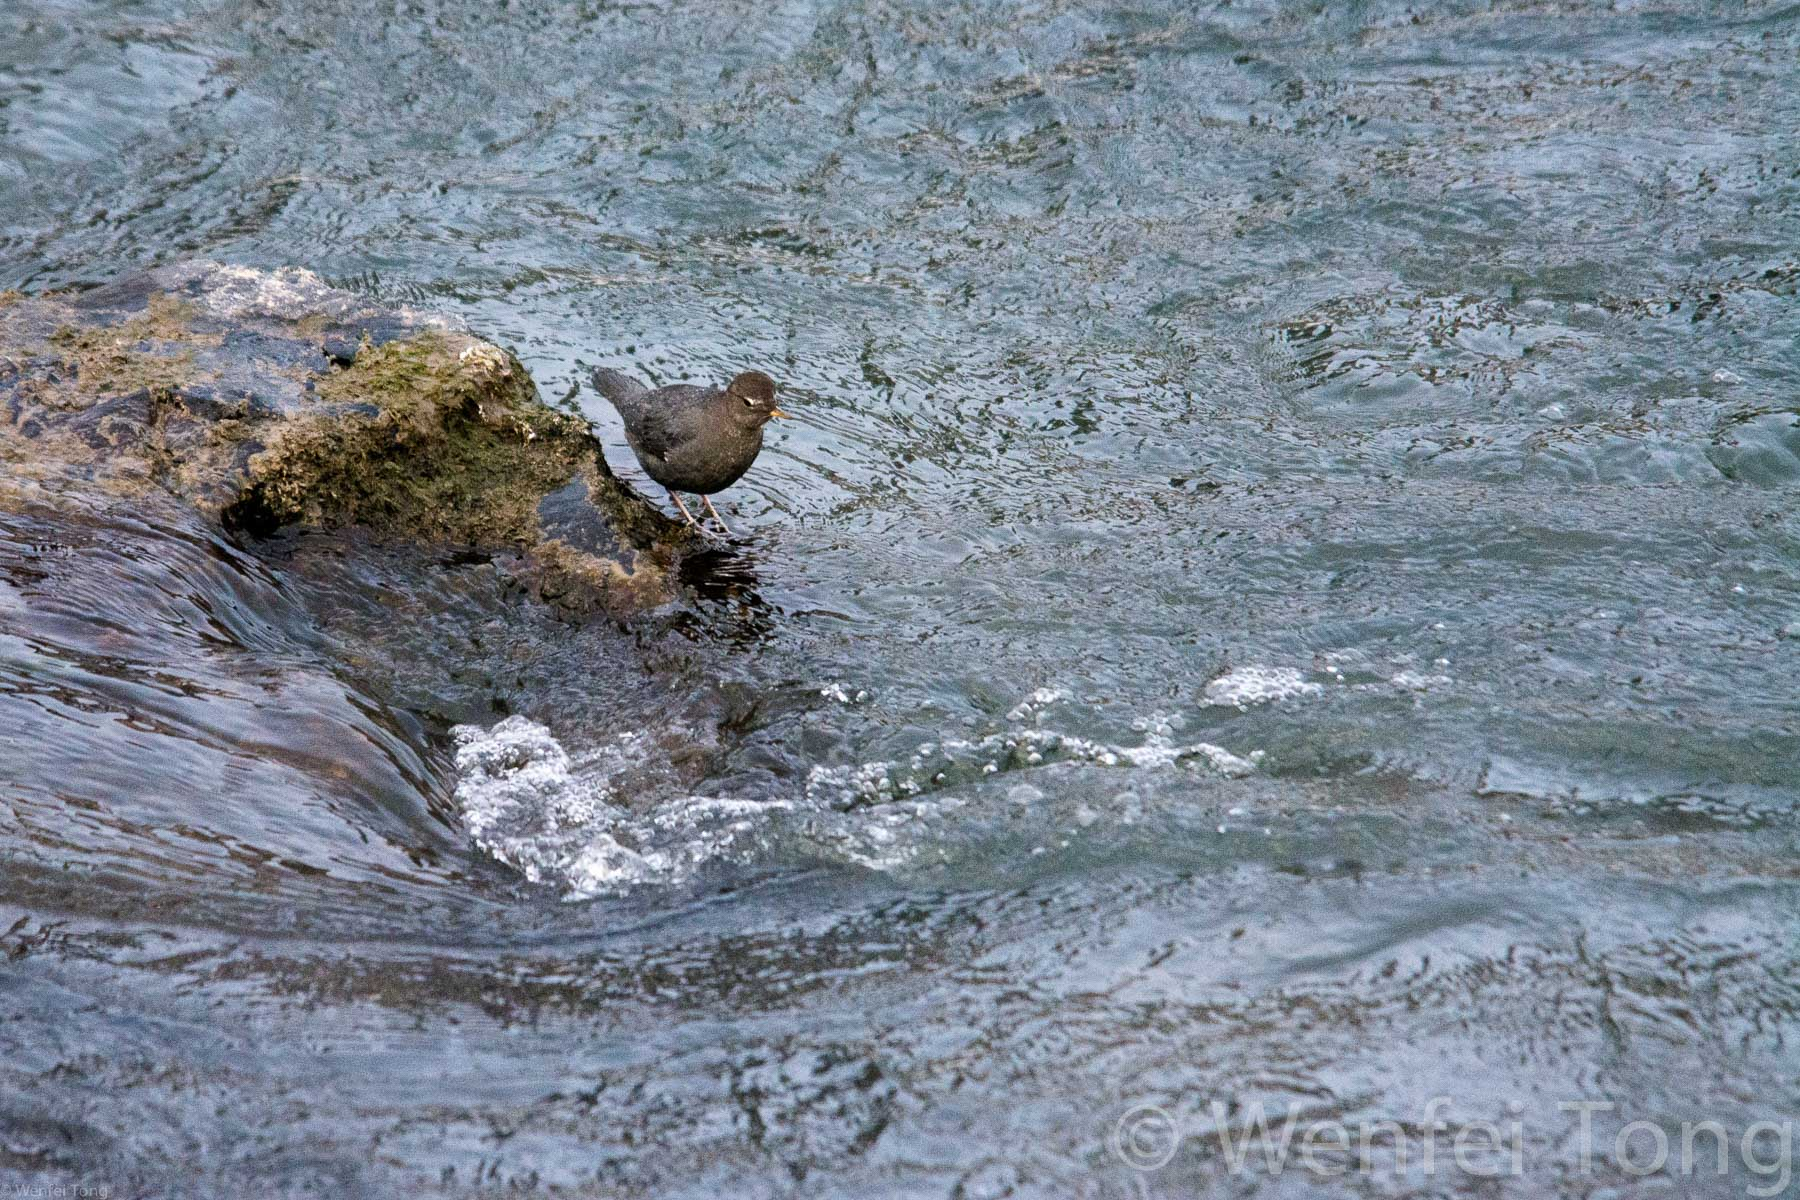 American dippers live year-round in Missoula's parks